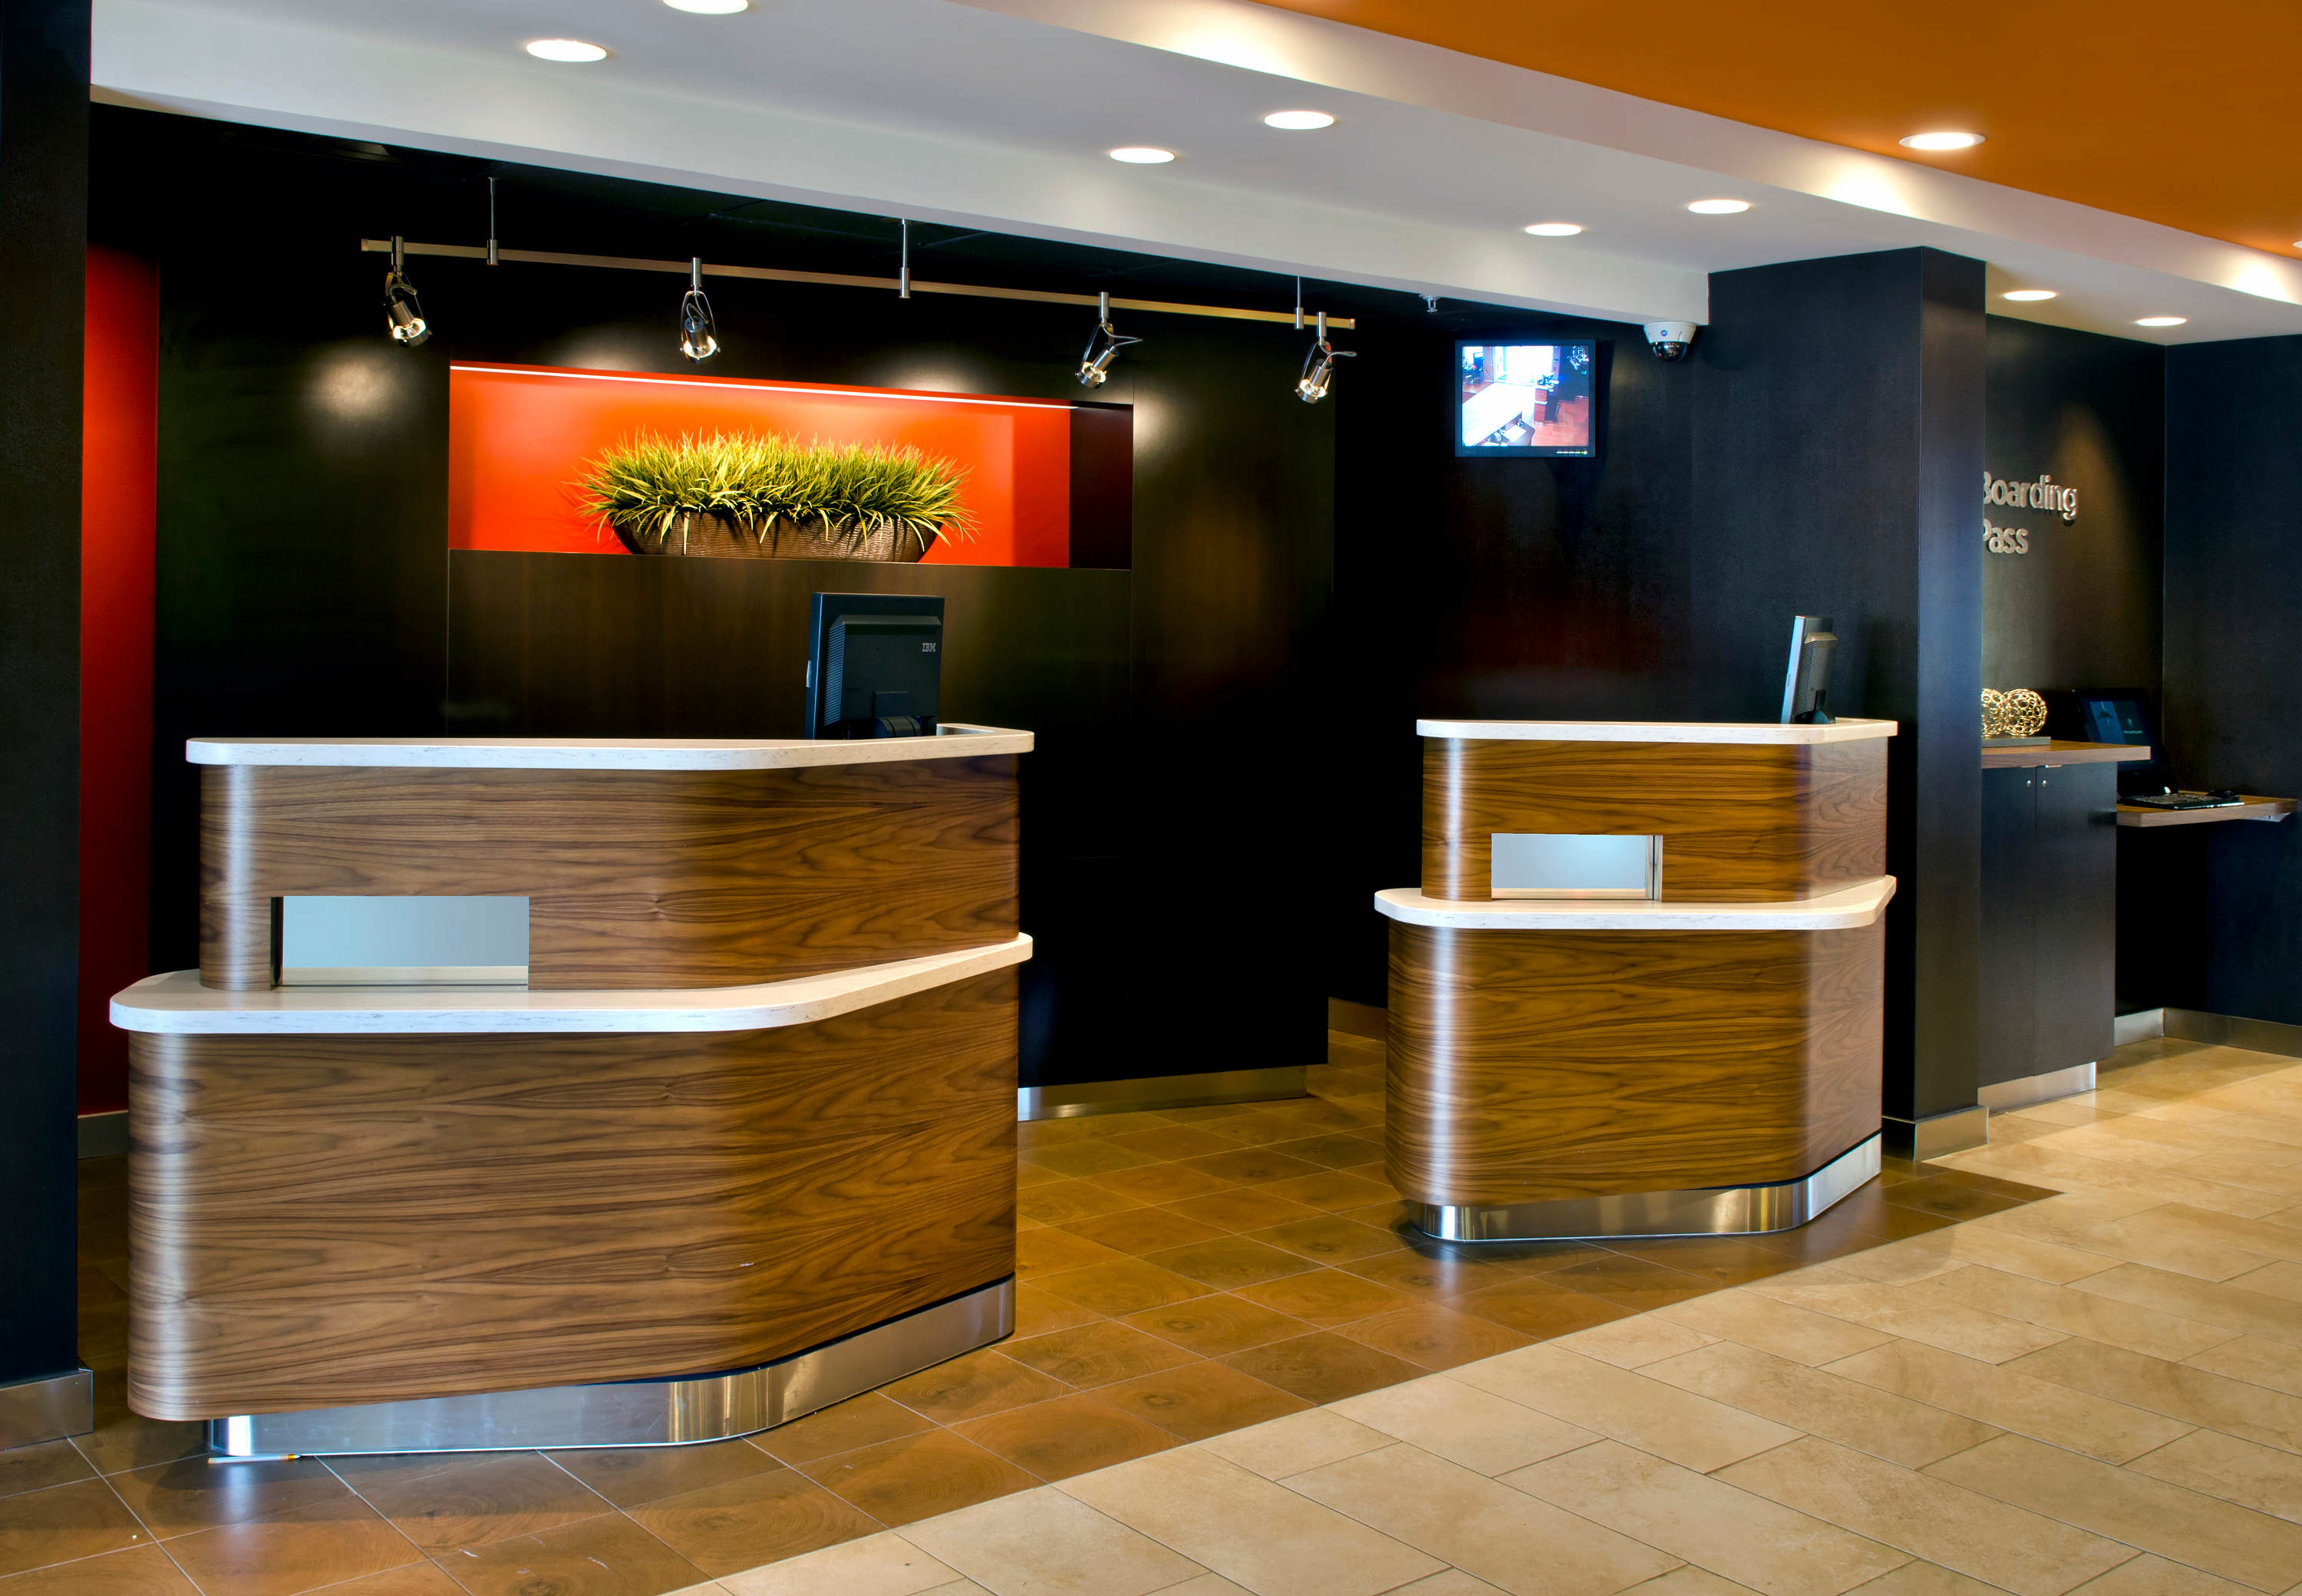 Courtyard by Marriott Allentown Bethlehem/Lehigh Valley Airport image 1